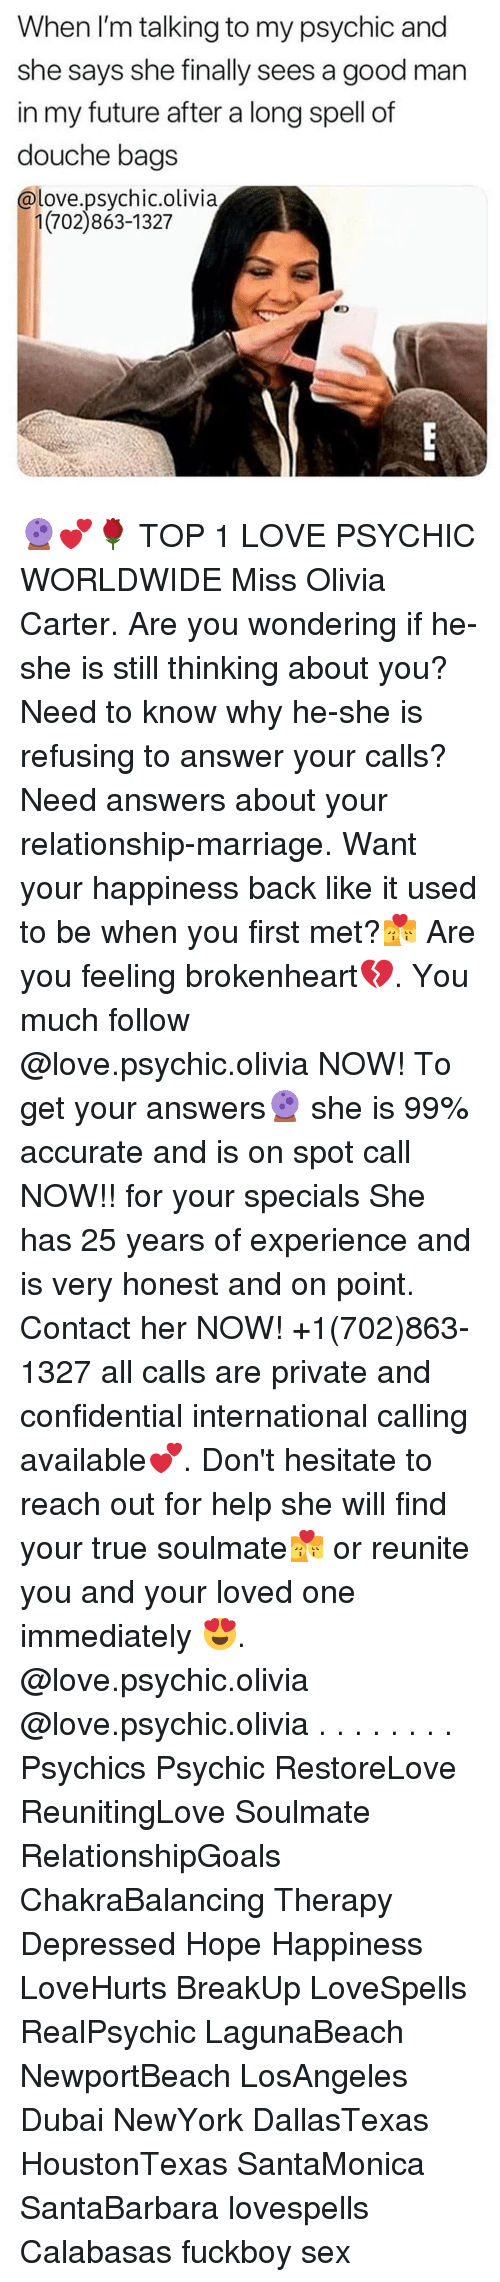 brokenheart: When I'm talking to my psychic and  she says she finally sees a good man  in my future after a long spell of  douche bags  @love.psychic.olivia  1(702)863-1327 🔮💕🌹 TOP 1 LOVE PSYCHIC WORLDWIDE Miss Olivia Carter. Are you wondering if he-she is still thinking about you? Need to know why he-she is refusing to answer your calls? Need answers about your relationship-marriage. Want your happiness back like it used to be when you first met?💏 Are you feeling brokenheart💔. You much follow @love.psychic.olivia NOW! To get your answers🔮 she is 99% accurate and is on spot call NOW!! for your specials She has 25 years of experience and is very honest and on point. Contact her NOW! +1(702)863-1327 all calls are private and confidential international calling available💕. Don't hesitate to reach out for help she will find your true soulmate💏 or reunite you and your loved one immediately 😍. @love.psychic.olivia @love.psychic.olivia . . . . . . . . Psychics Psychic RestoreLove ReunitingLove Soulmate RelationshipGoals ChakraBalancing Therapy Depressed Hope Happiness LoveHurts BreakUp LoveSpells RealPsychic LagunaBeach NewportBeach LosAngeles Dubai NewYork DallasTexas HoustonTexas SantaMonica SantaBarbara lovespells Calabasas fuckboy sex